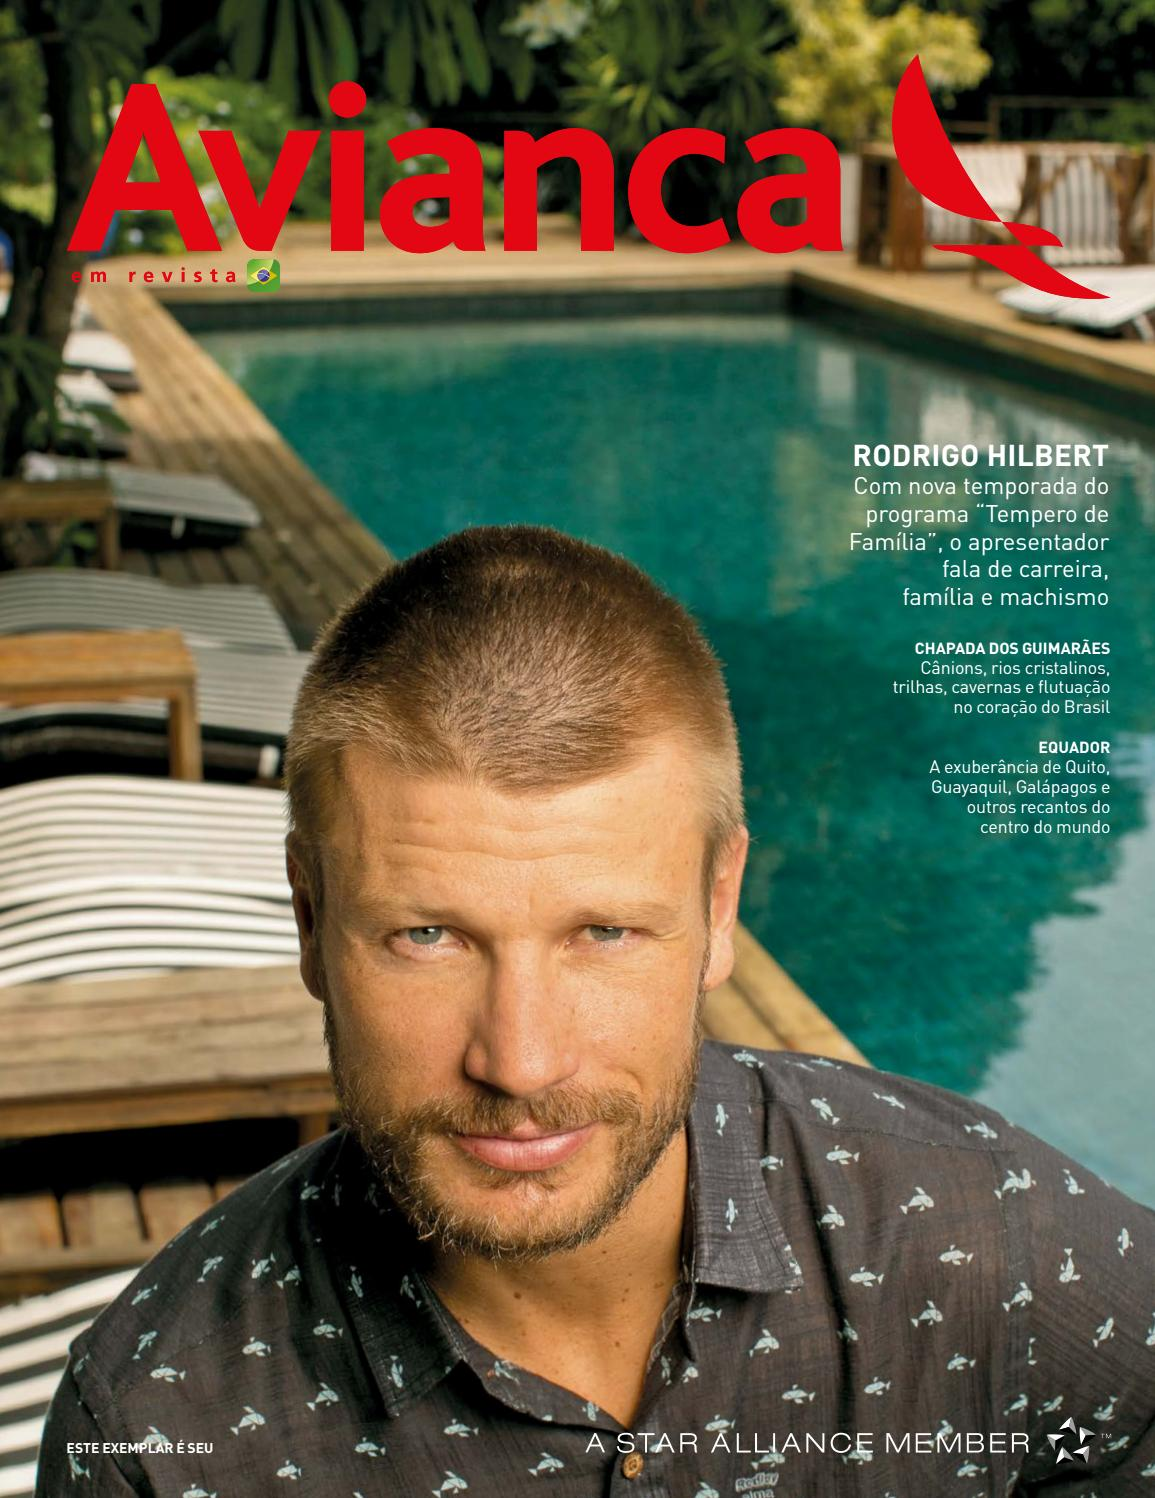 81 - Rodrigo Hilbert by Avianca em Revista - issuu 84a1cf85e9